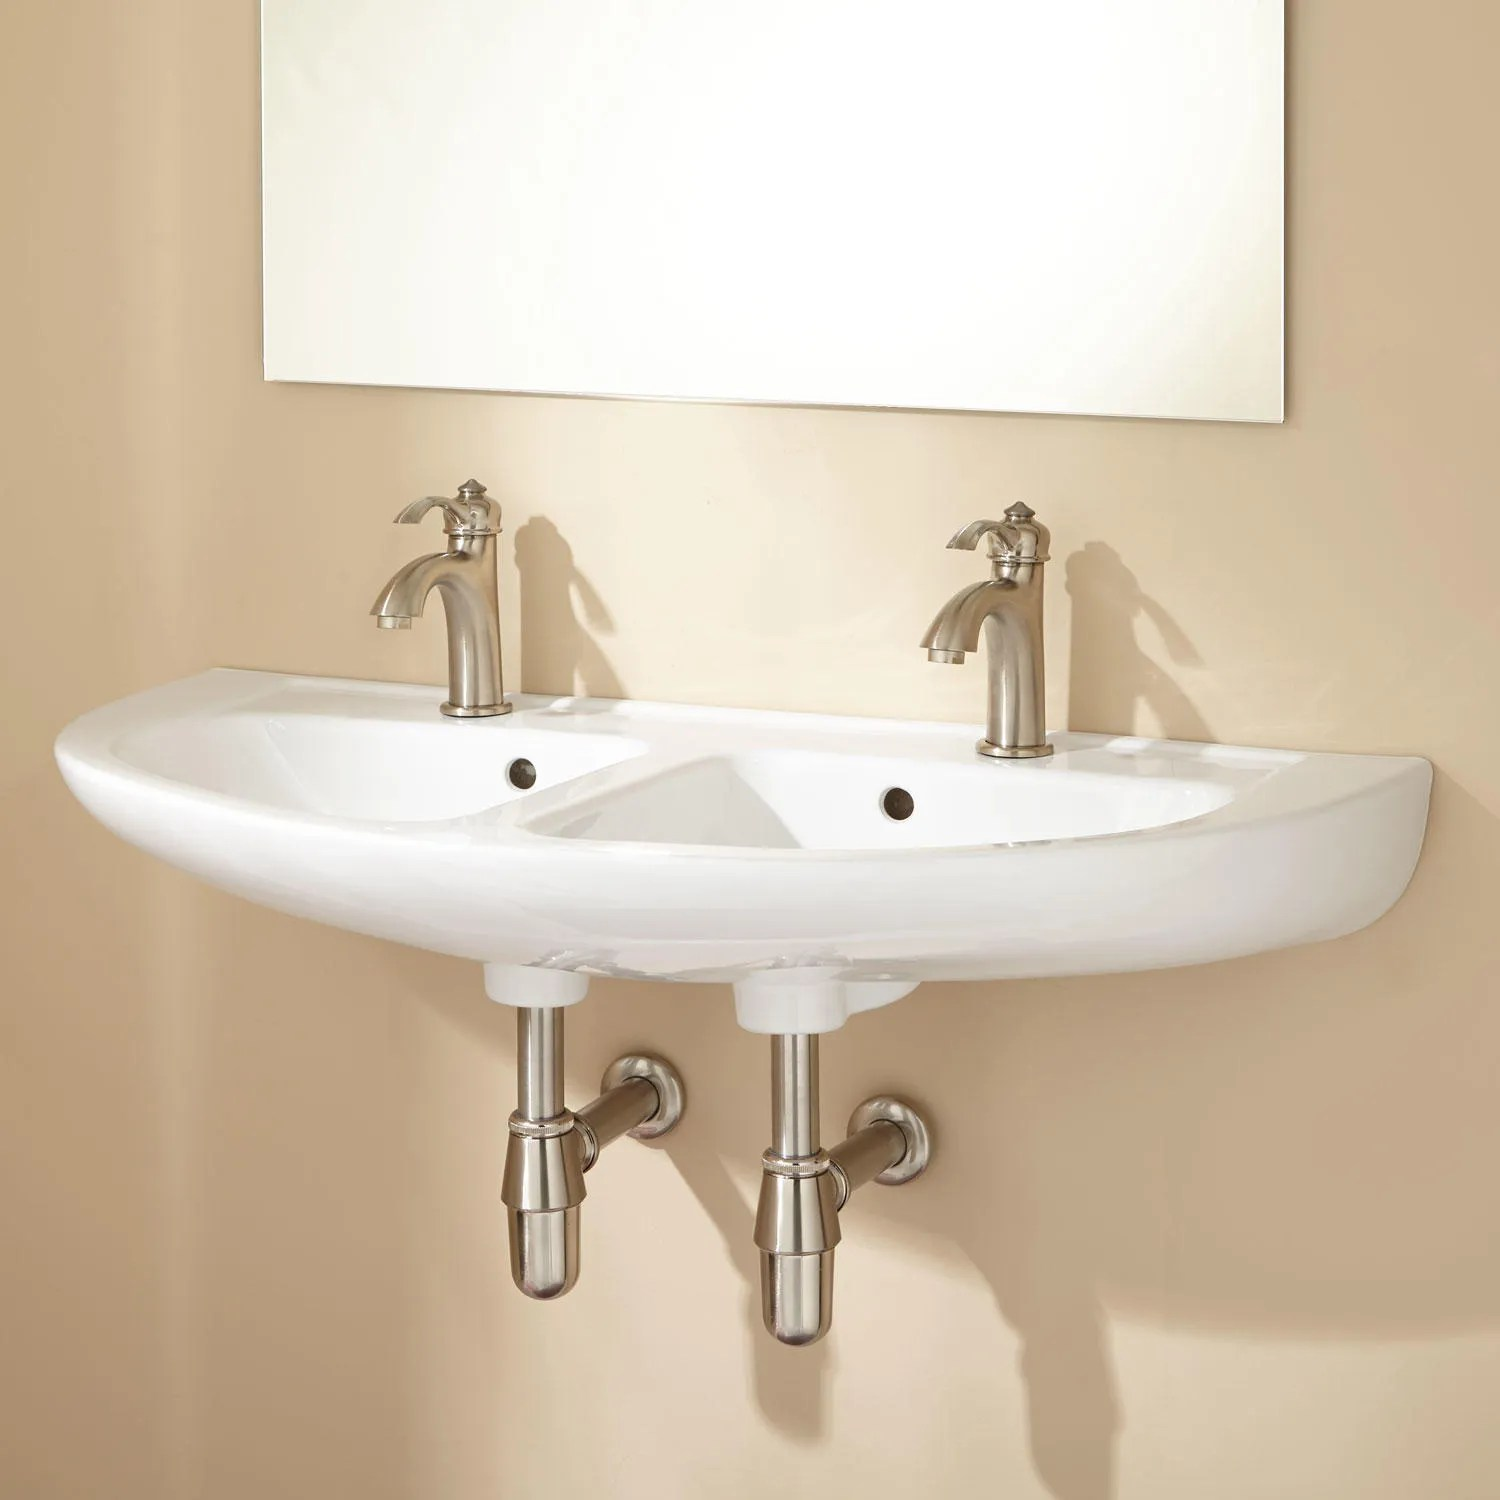 Cassin DoubleBowl WallMount Bathroom Sink